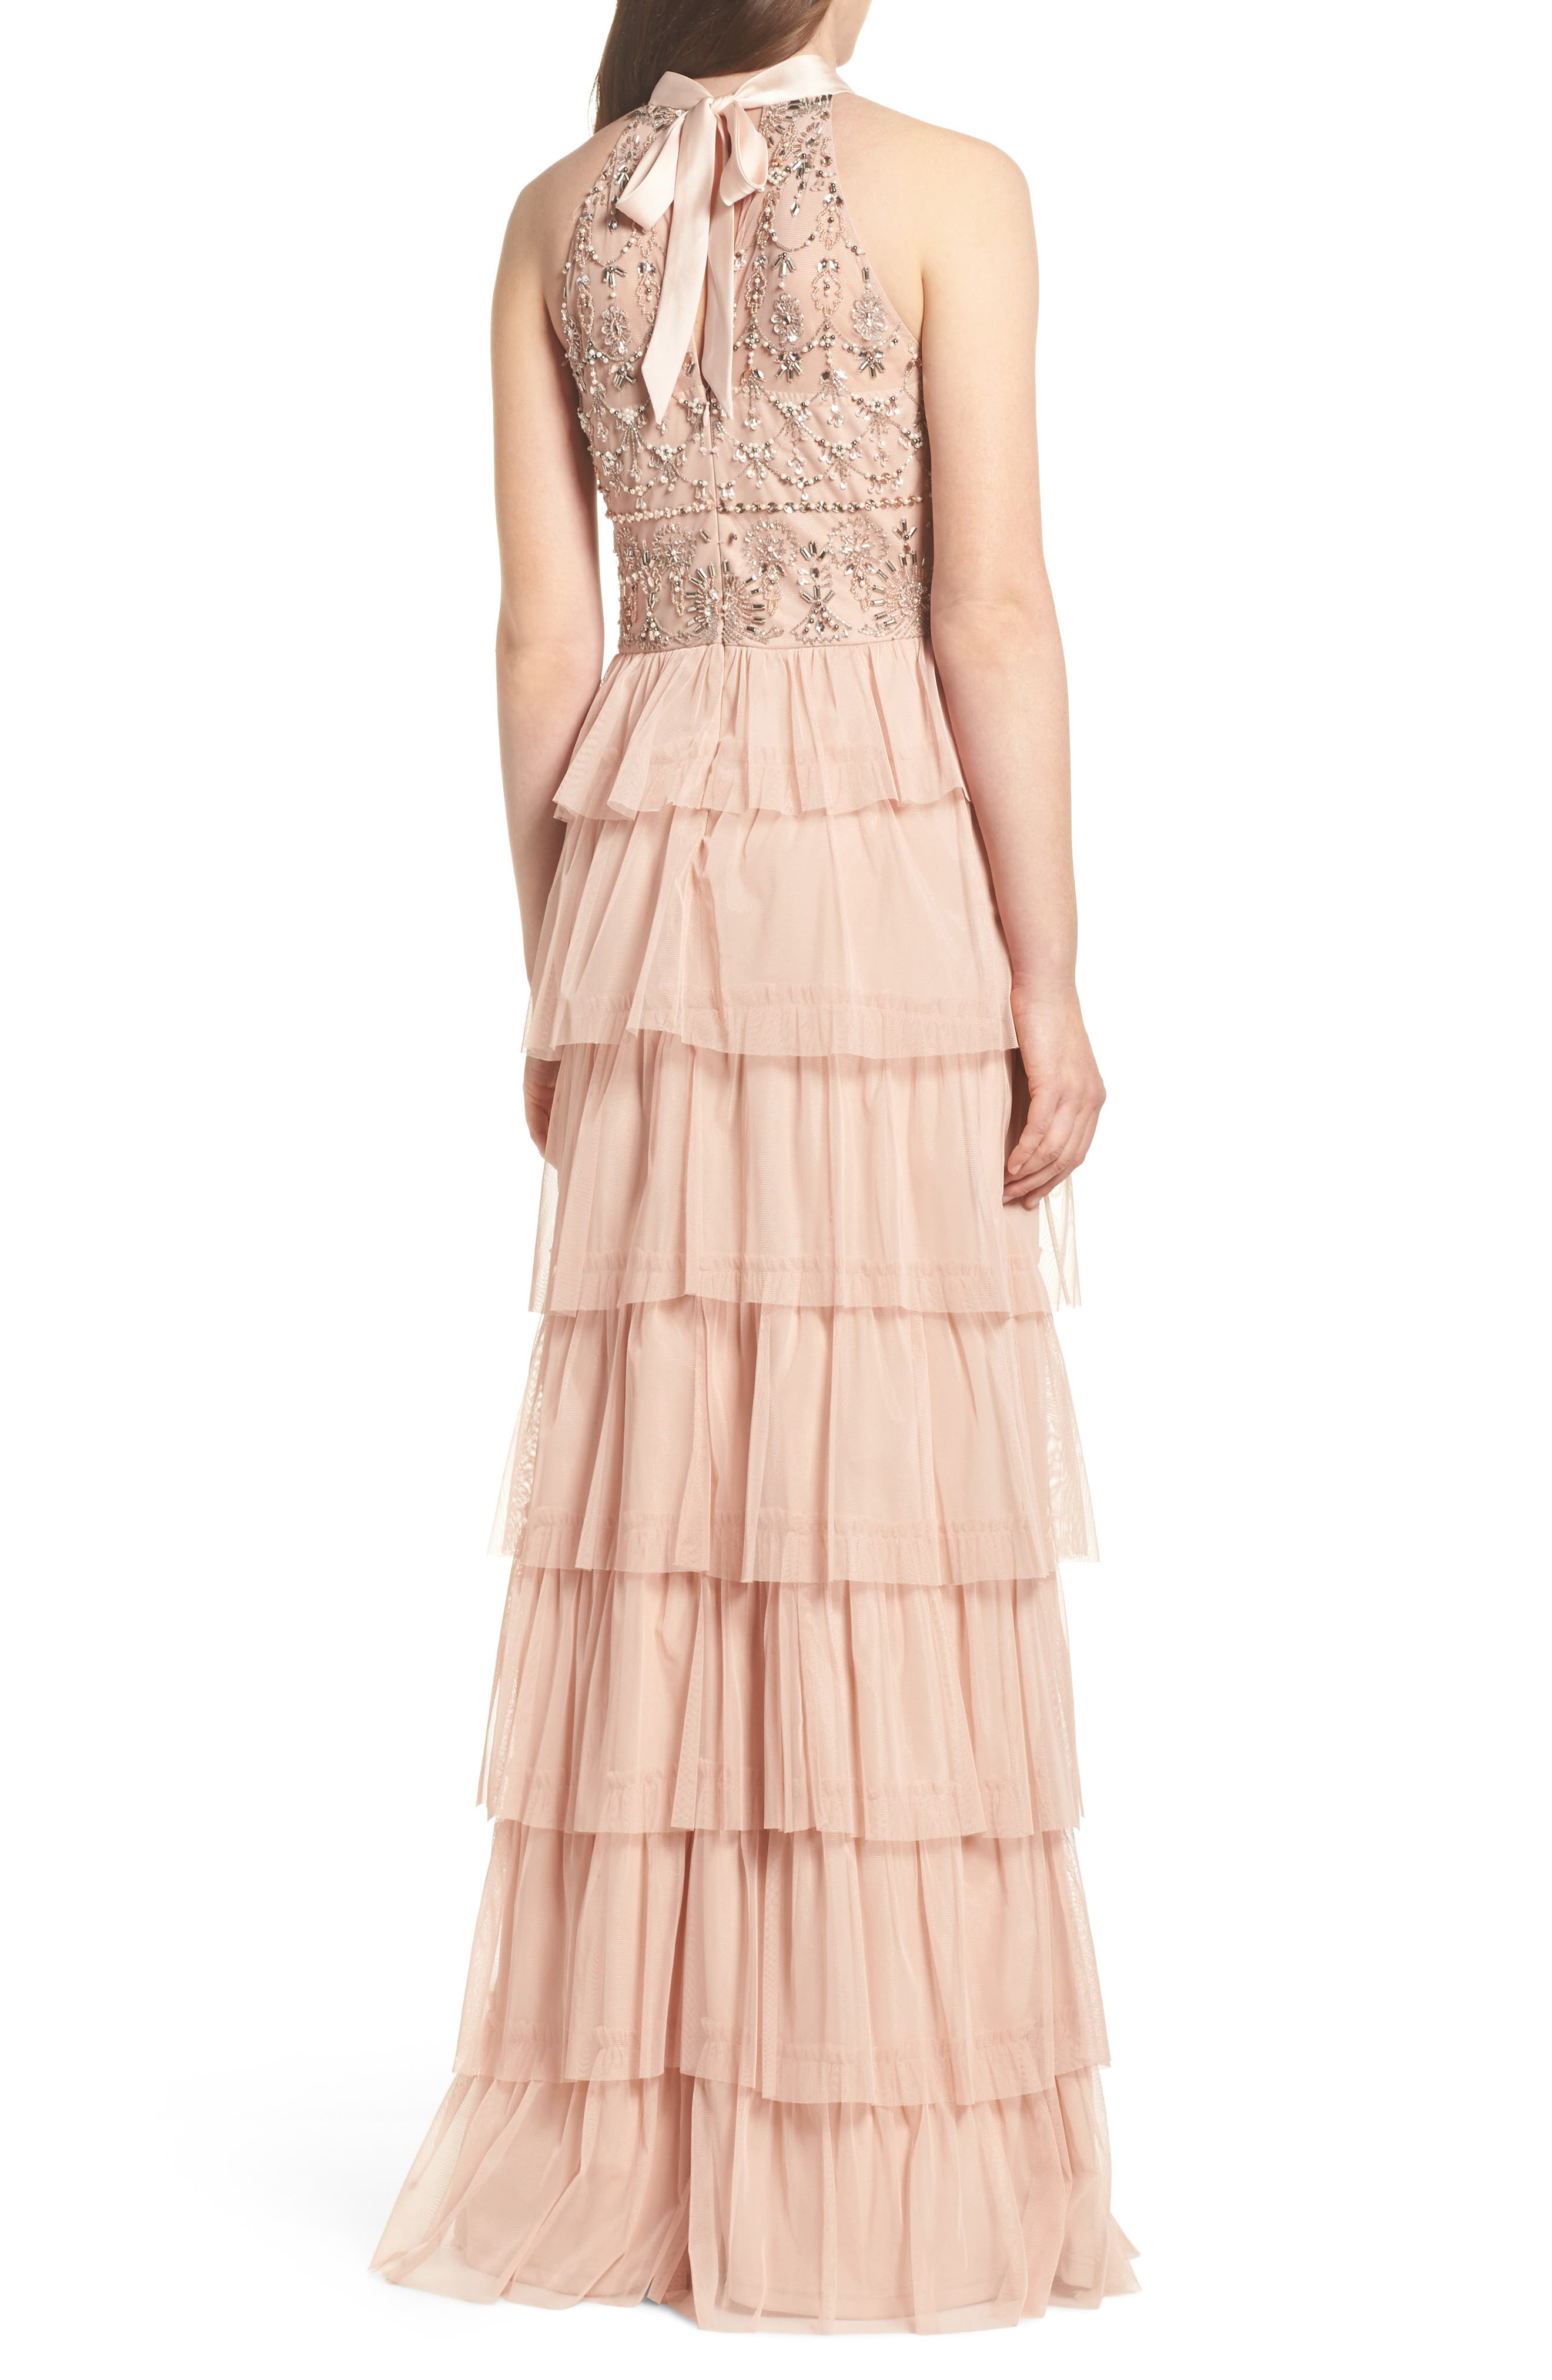 Embellished Tiered Maxi Dress,                             Alternate thumbnail 2, color,                             684